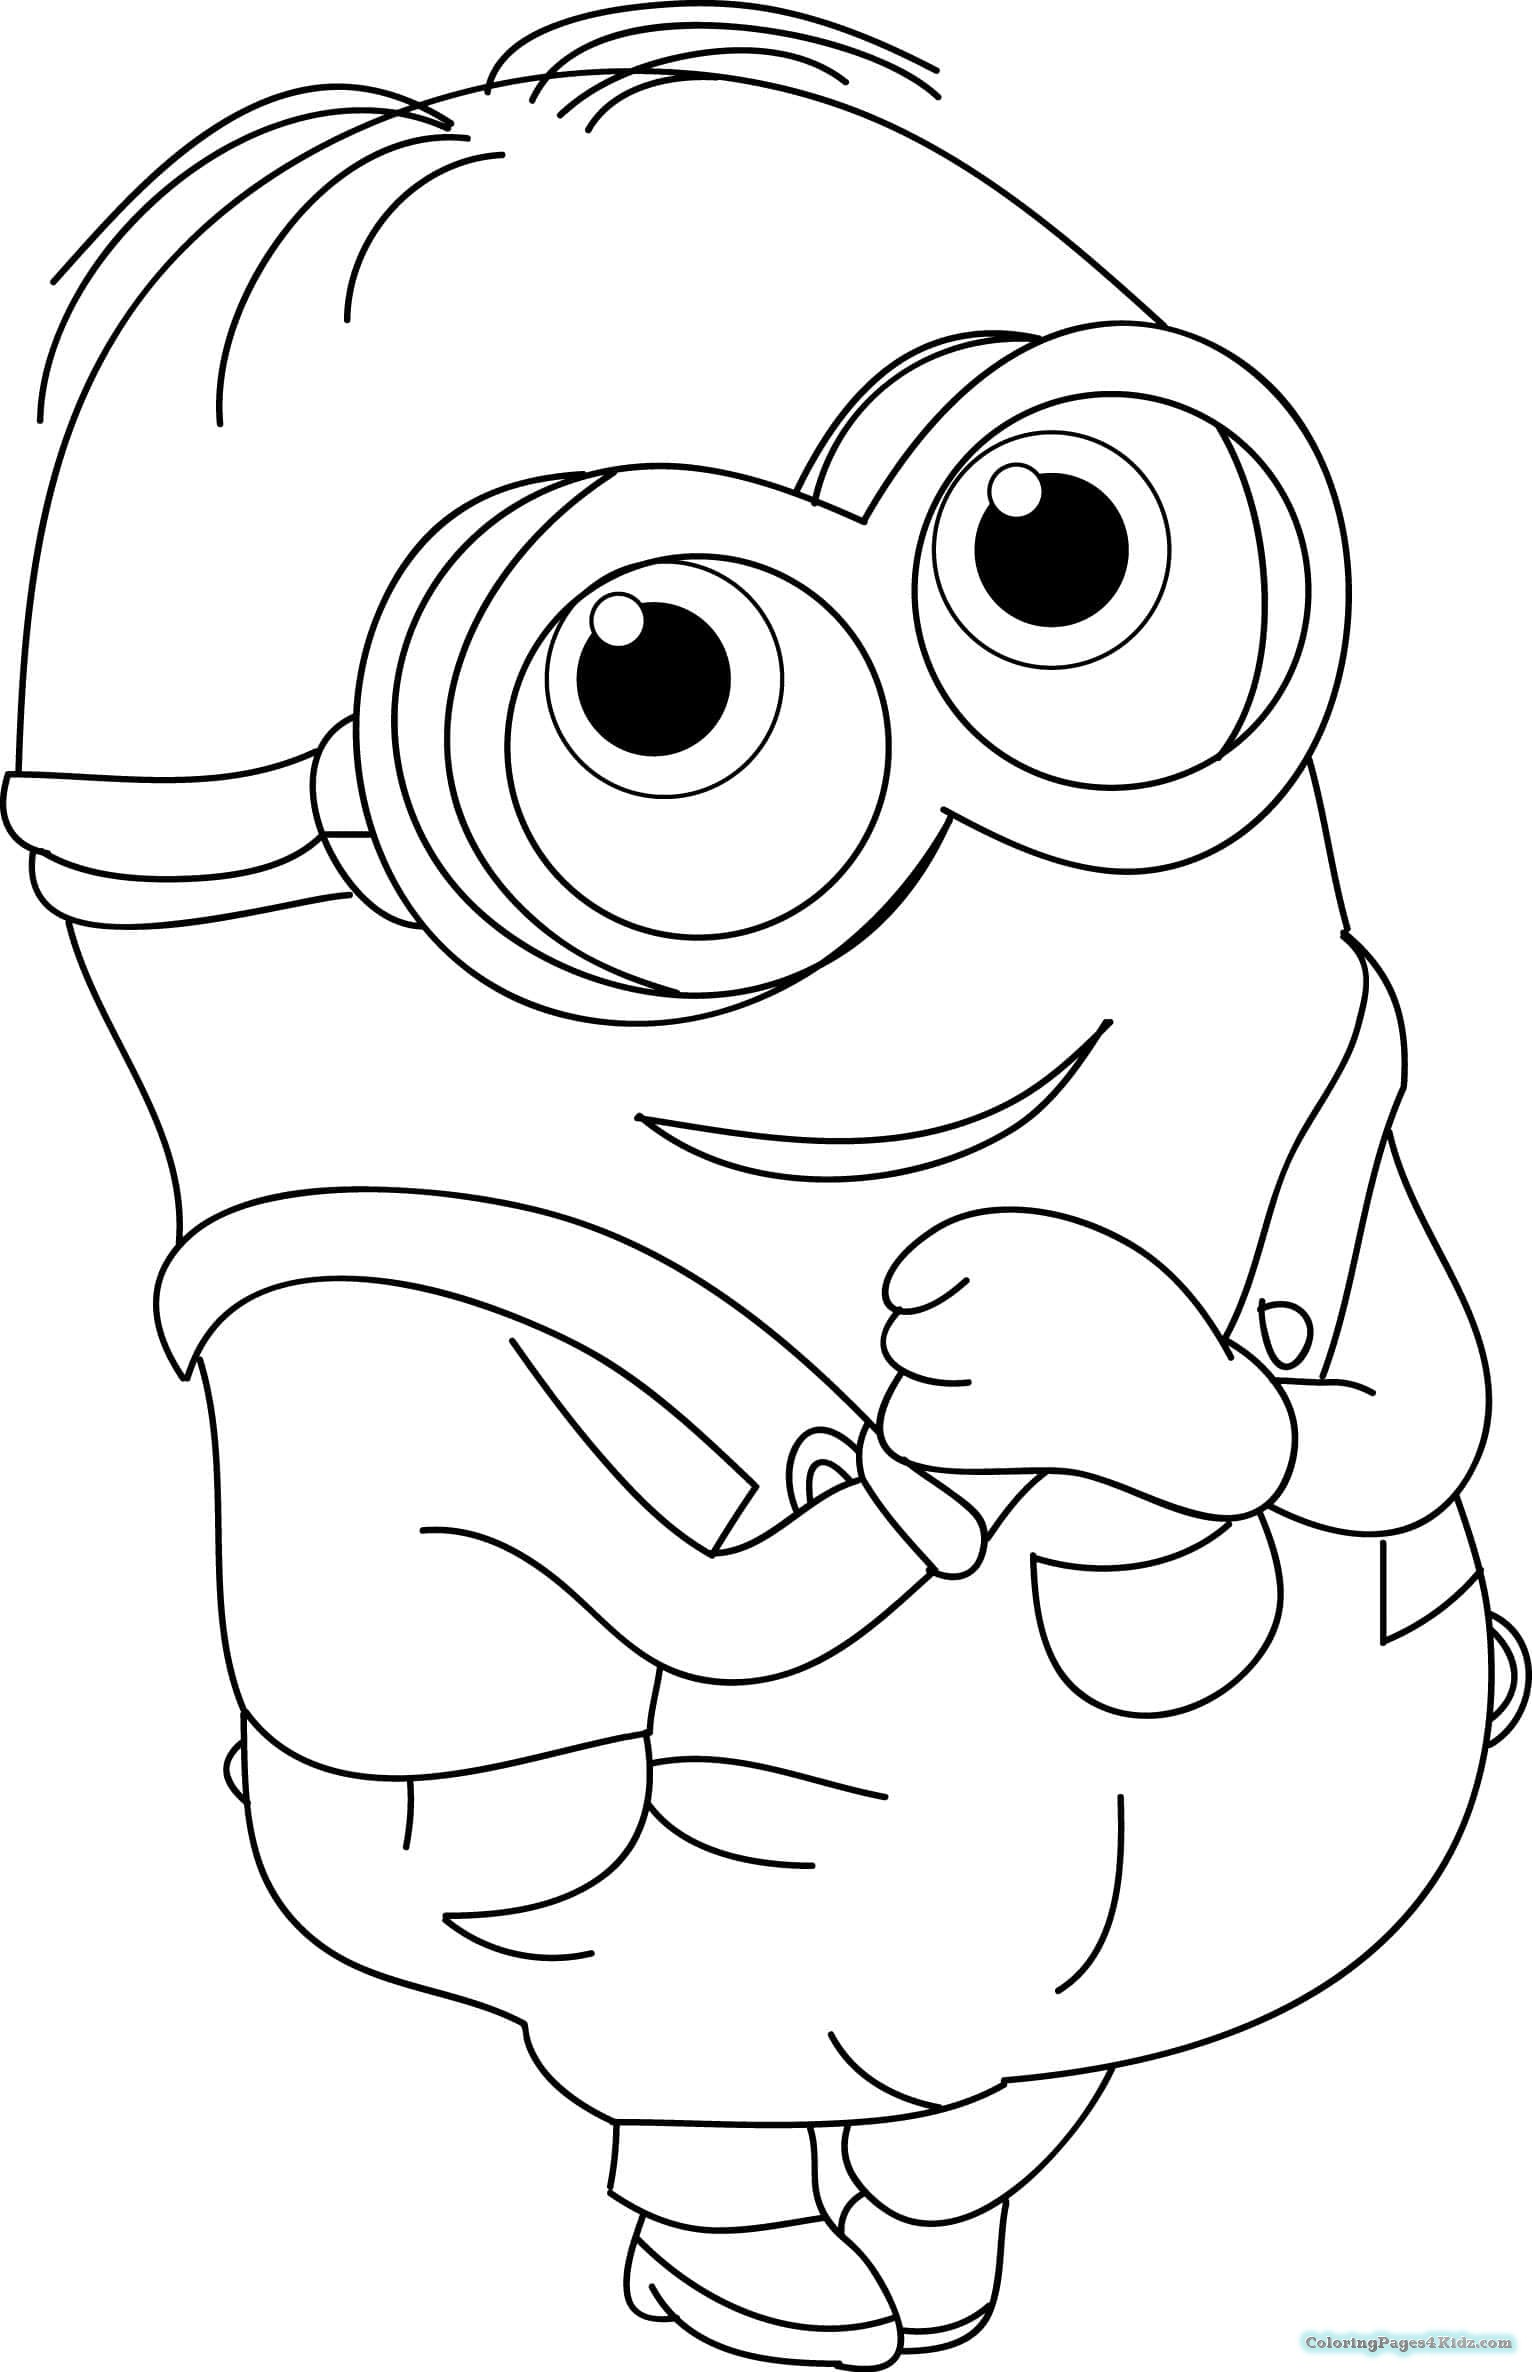 minion kevin coloring pages kevin the minion drawing at getdrawingscom free for kevin pages minion coloring